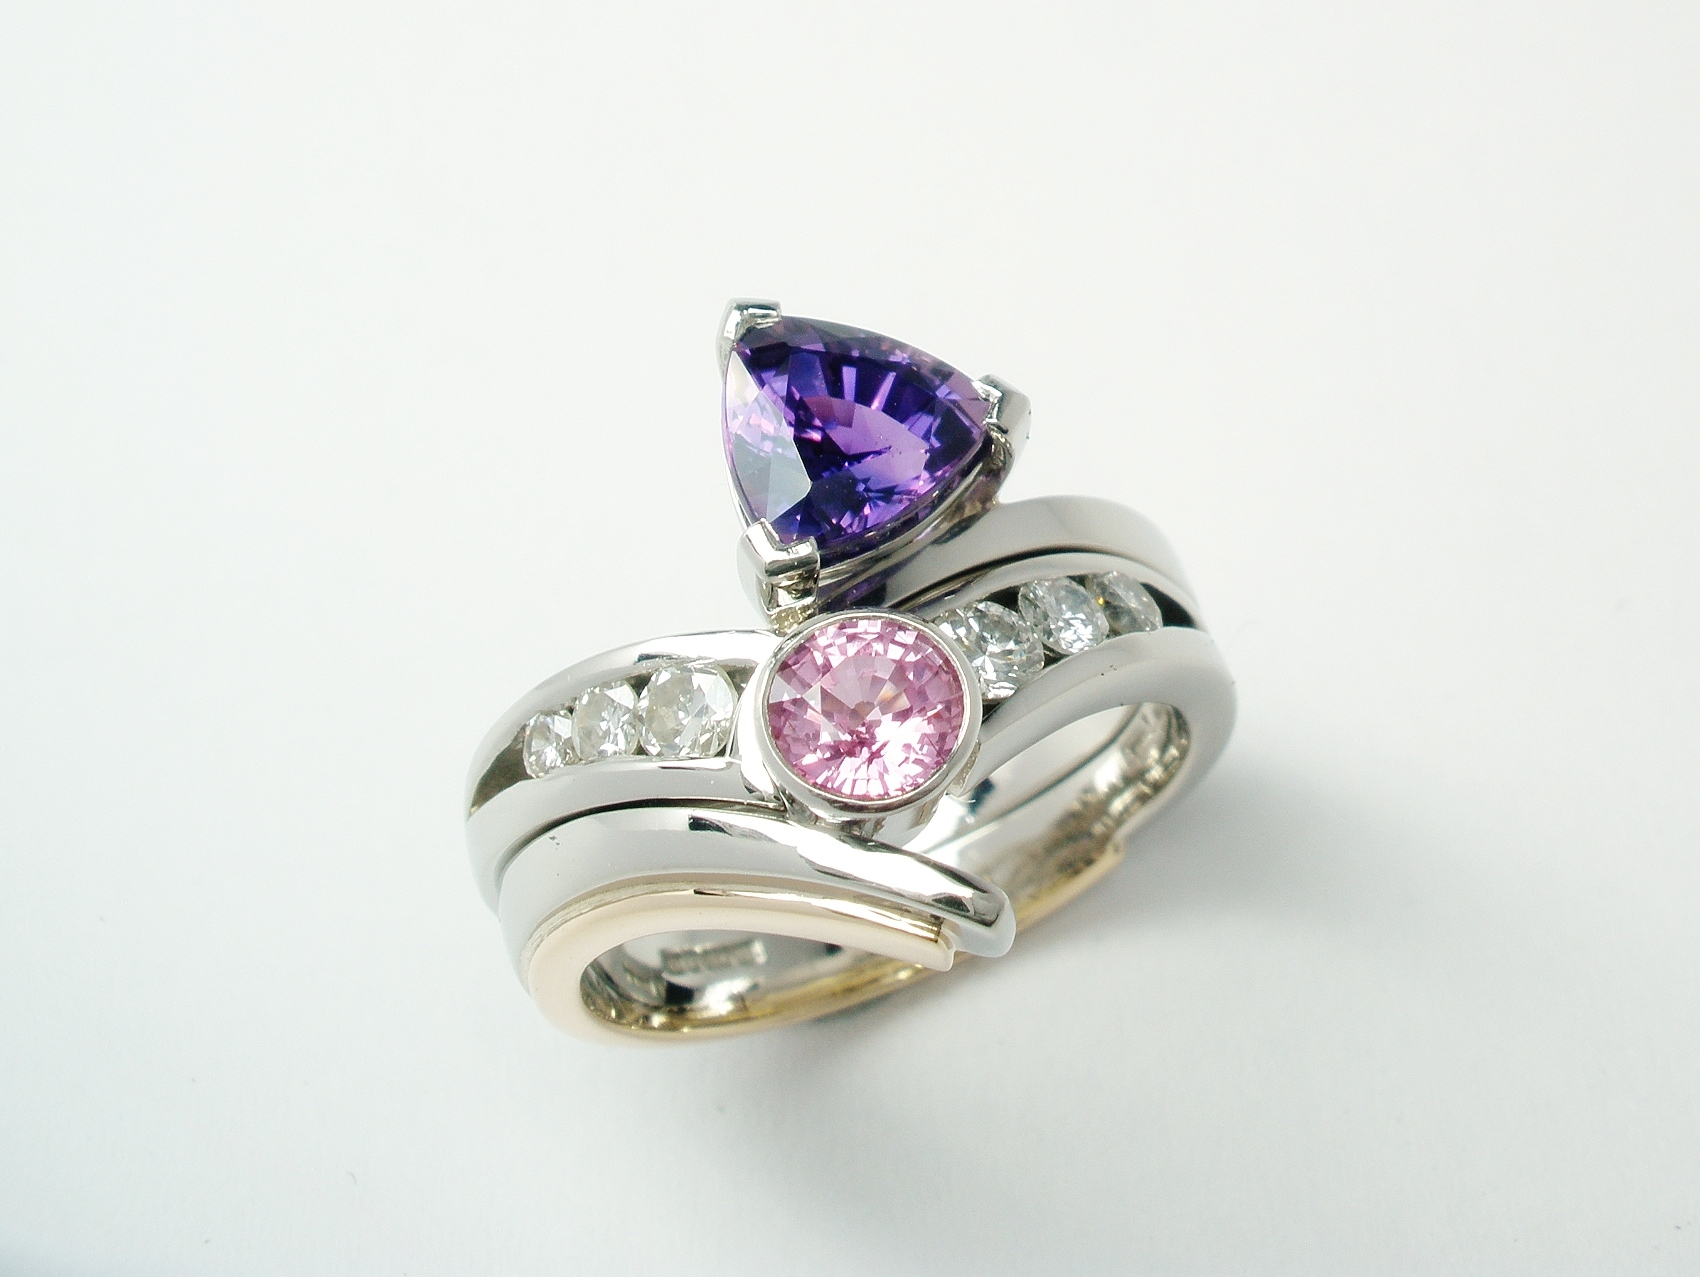 Purple trilliant sapphire and diamond ring fitting with round pink sapphire and diamond 4 stone ring.